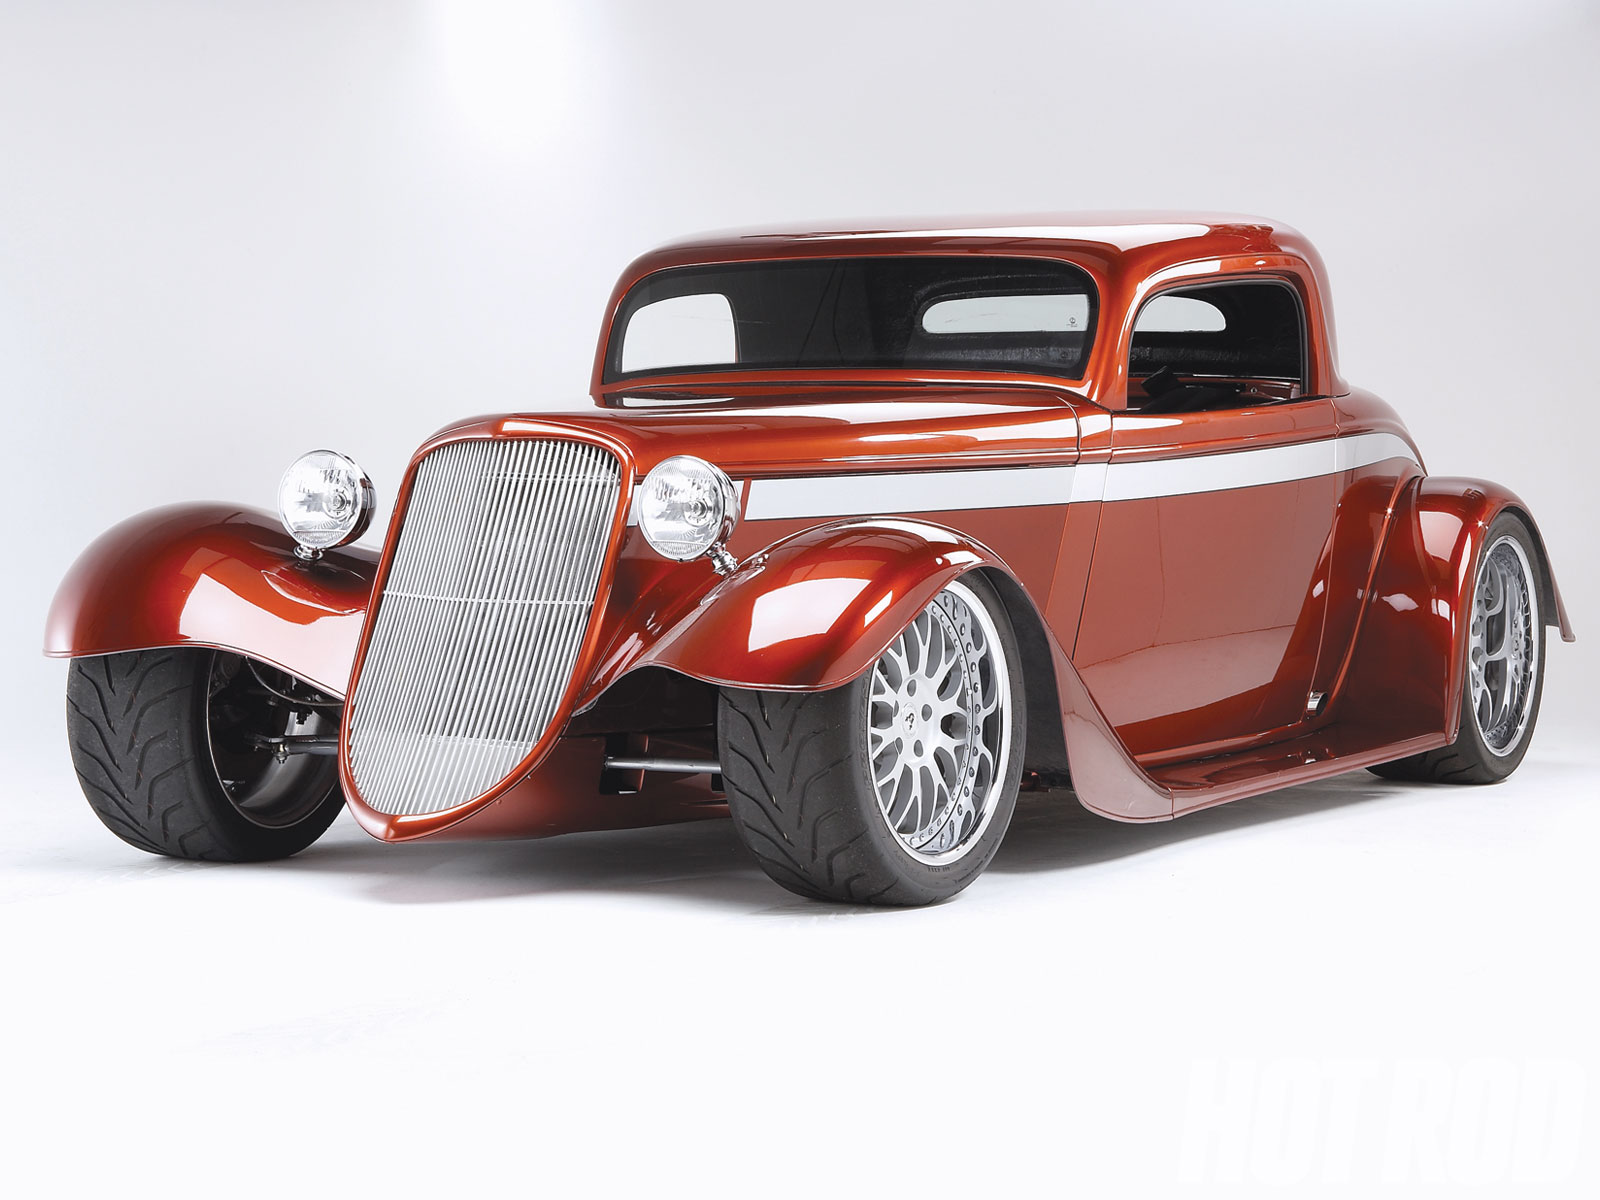 Hot Rod wallpapers, Vehicles, HQ Hot